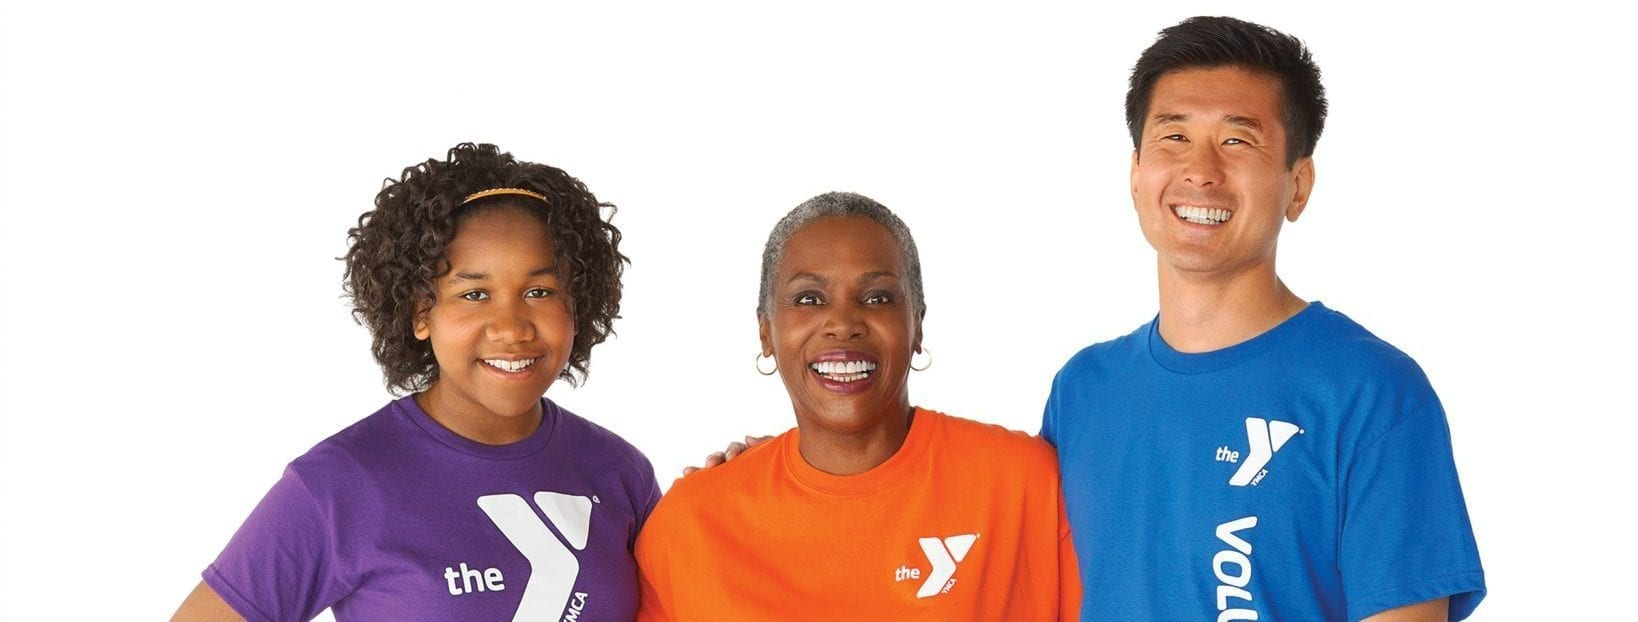 4 volunteers smiling in colorful shirts